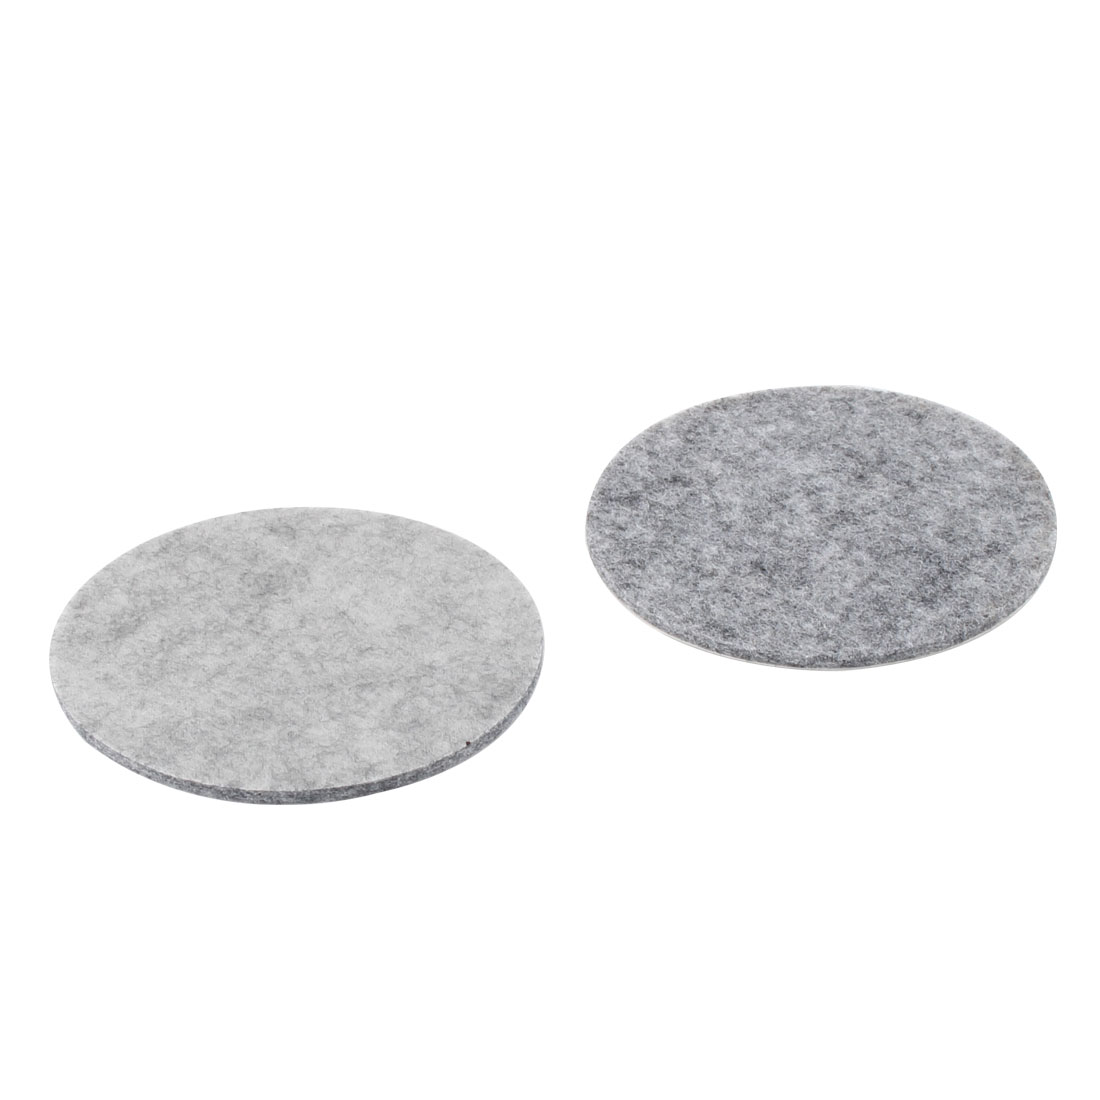 Table Chair Legs Protector Furniture Felt Pads Cushions Mats Gray 85mm Dia 2pcs